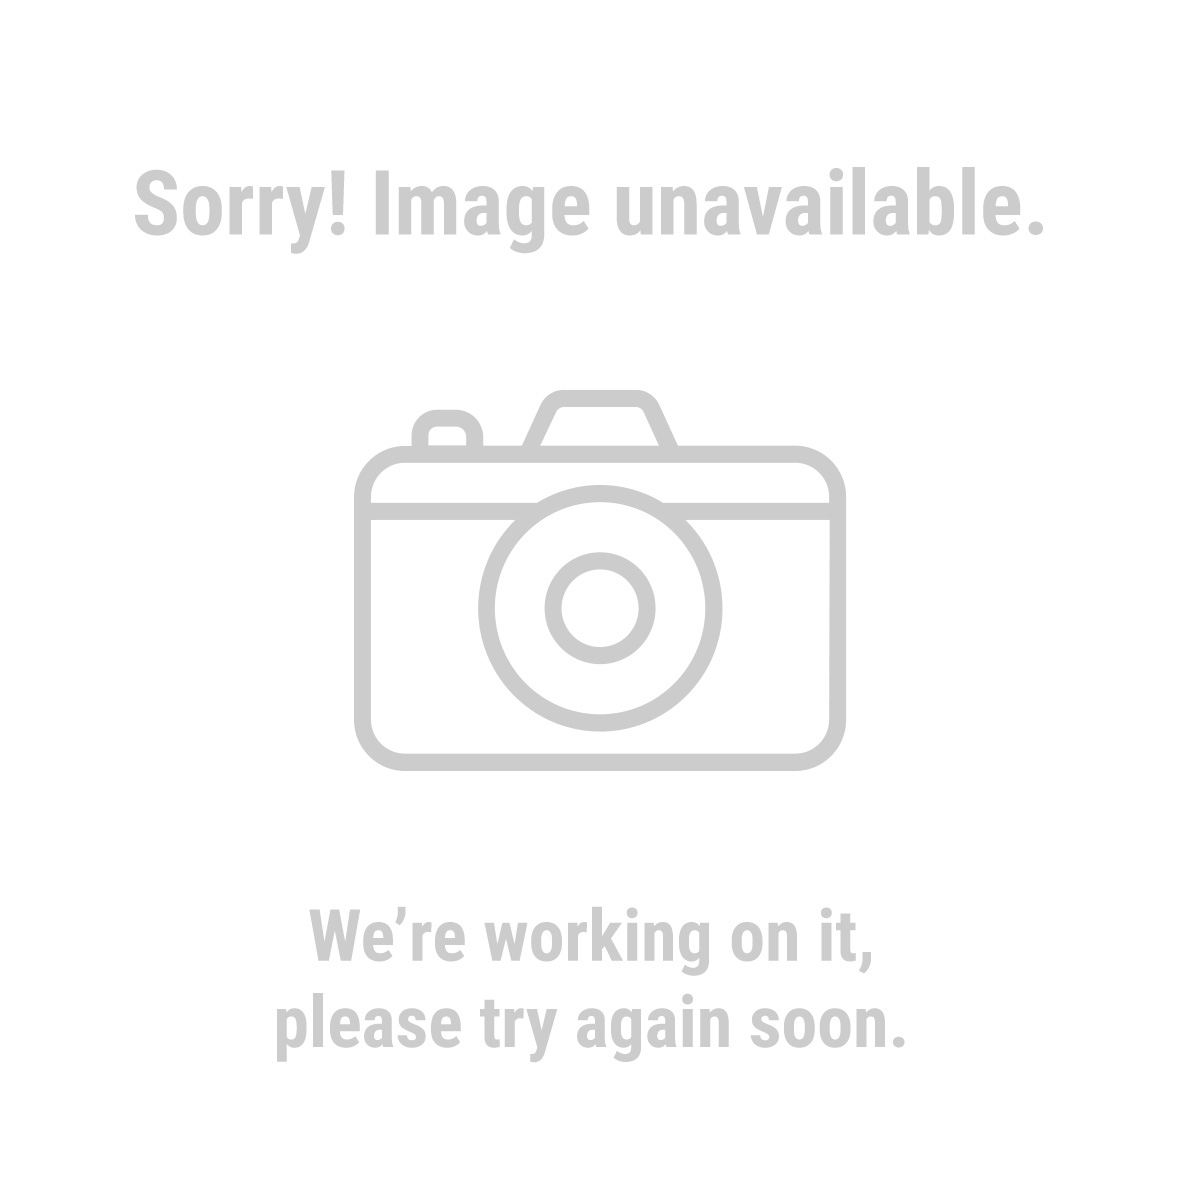 HFT 60566 27 LED Portable Worklight/Flashlight